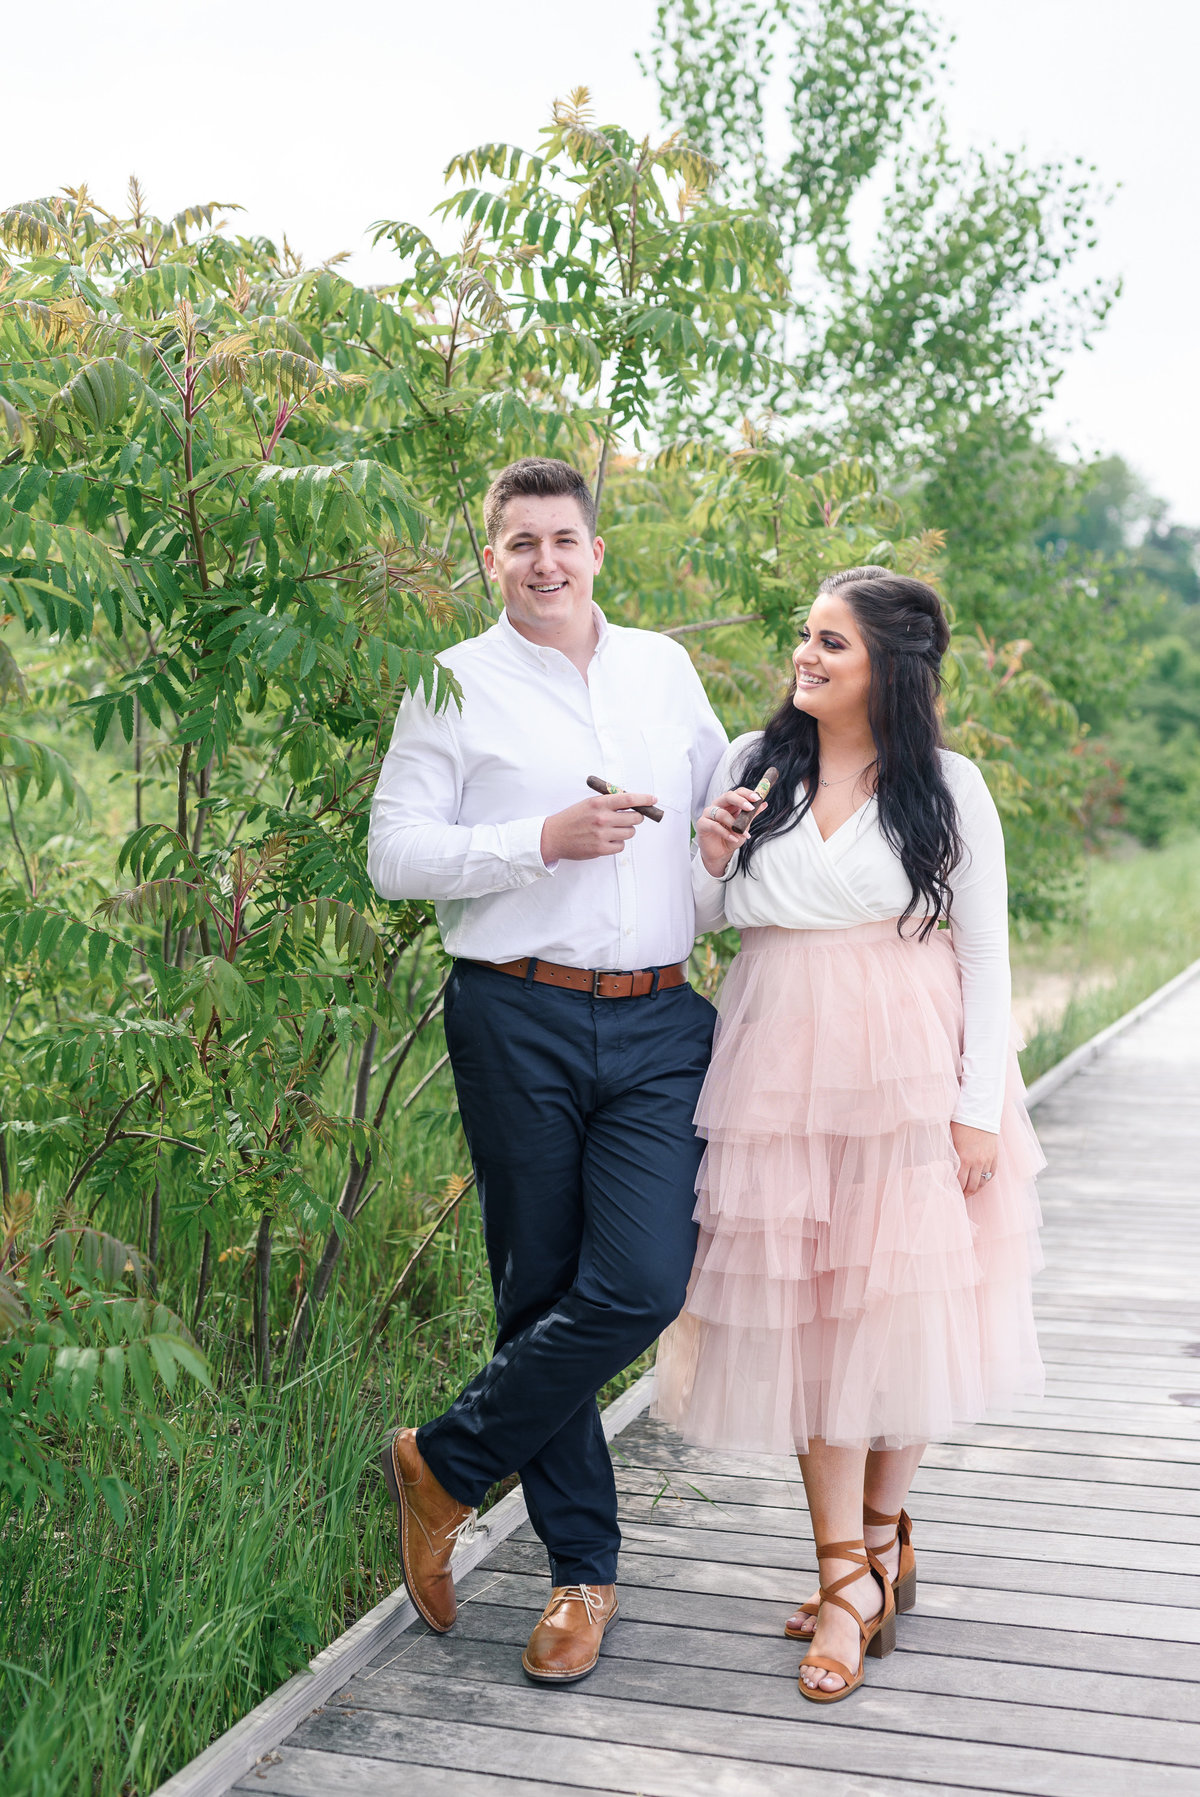 atwater-beach-engagement-milwaukee-the-paper-elephant-005